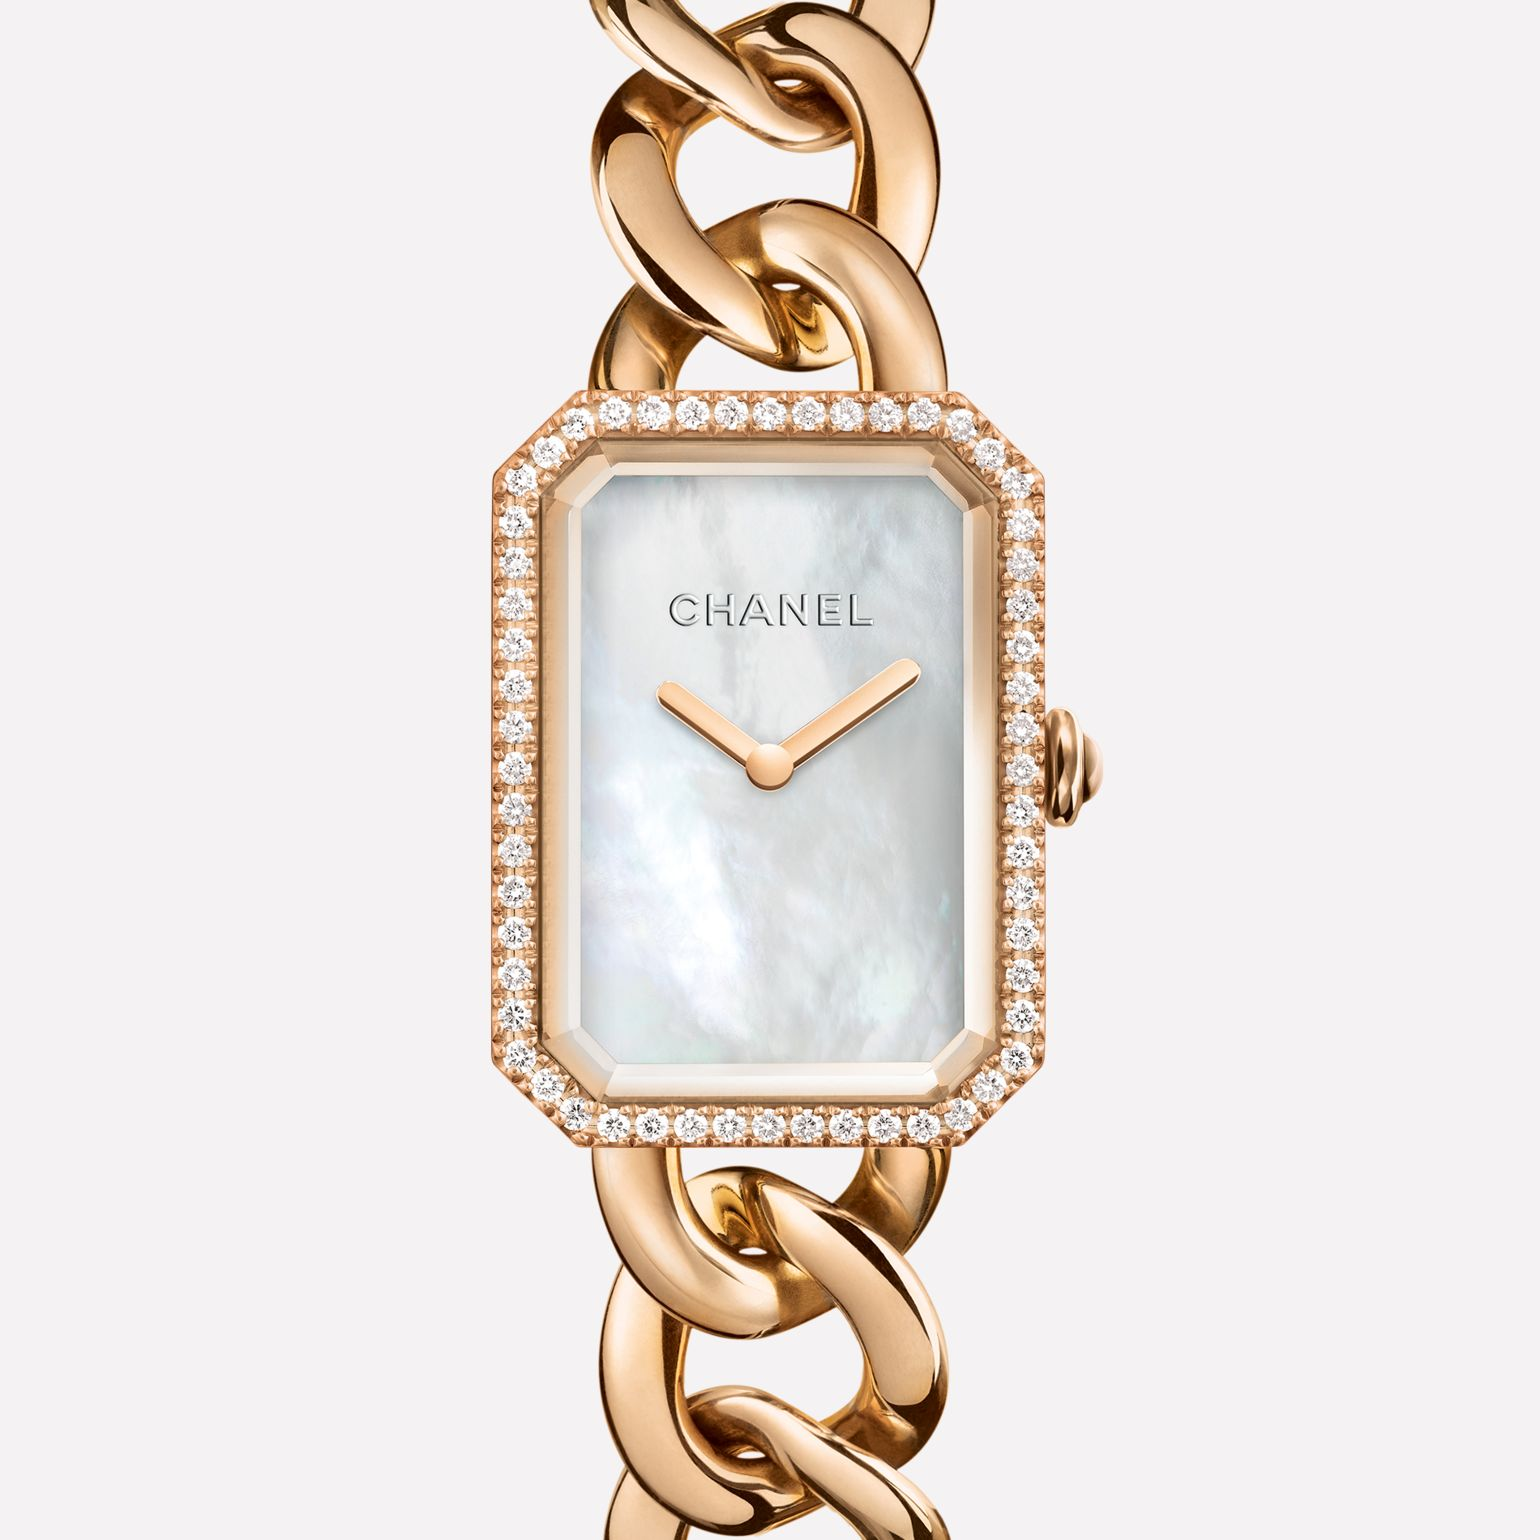 Première Chaîne Large version, BEIGE GOLD and diamonds, white mother-of-pearl dial